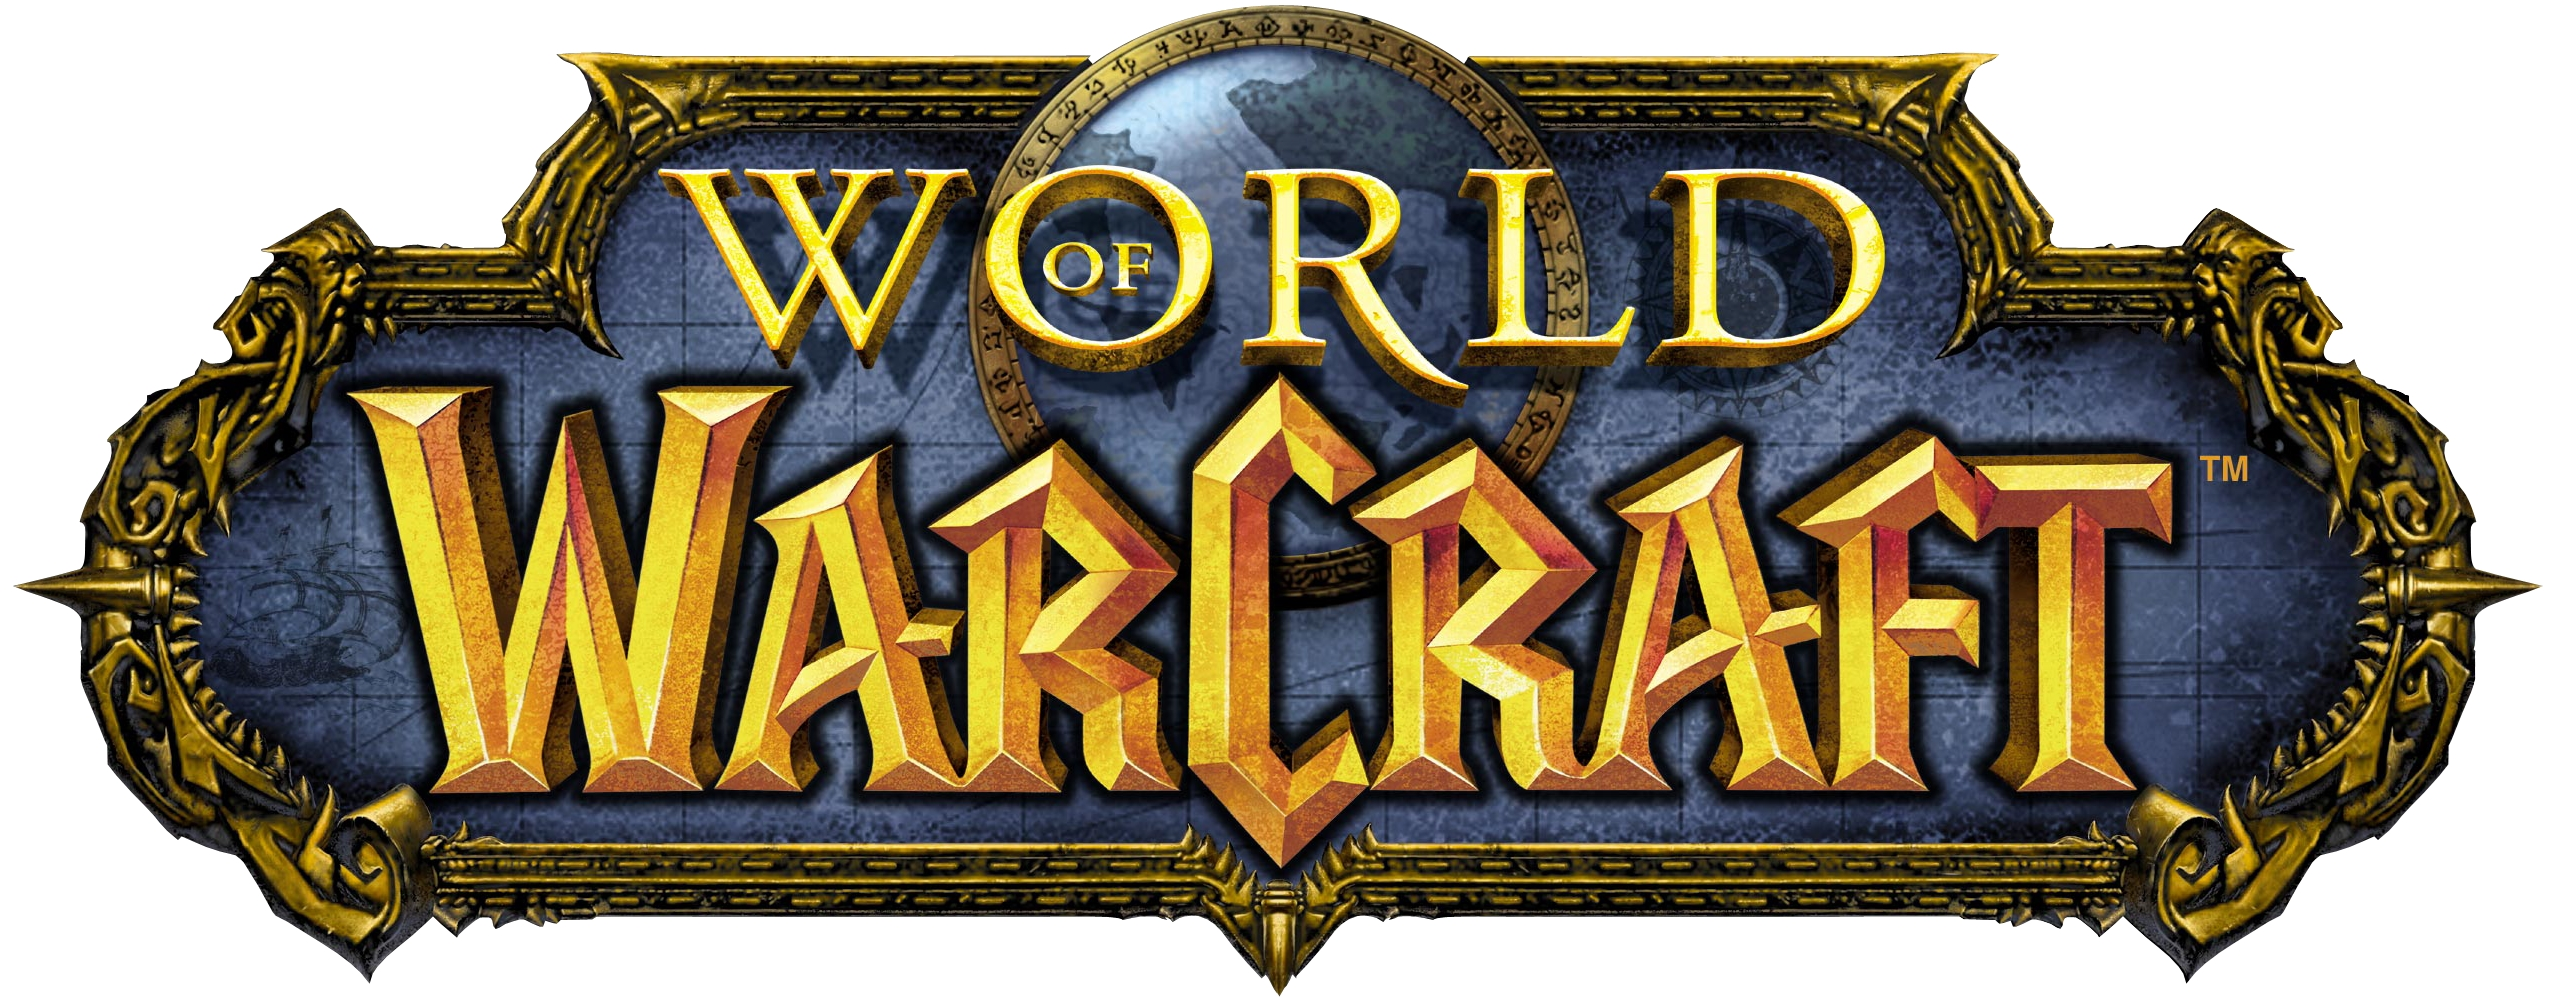 List of 'Back to WoW' posts